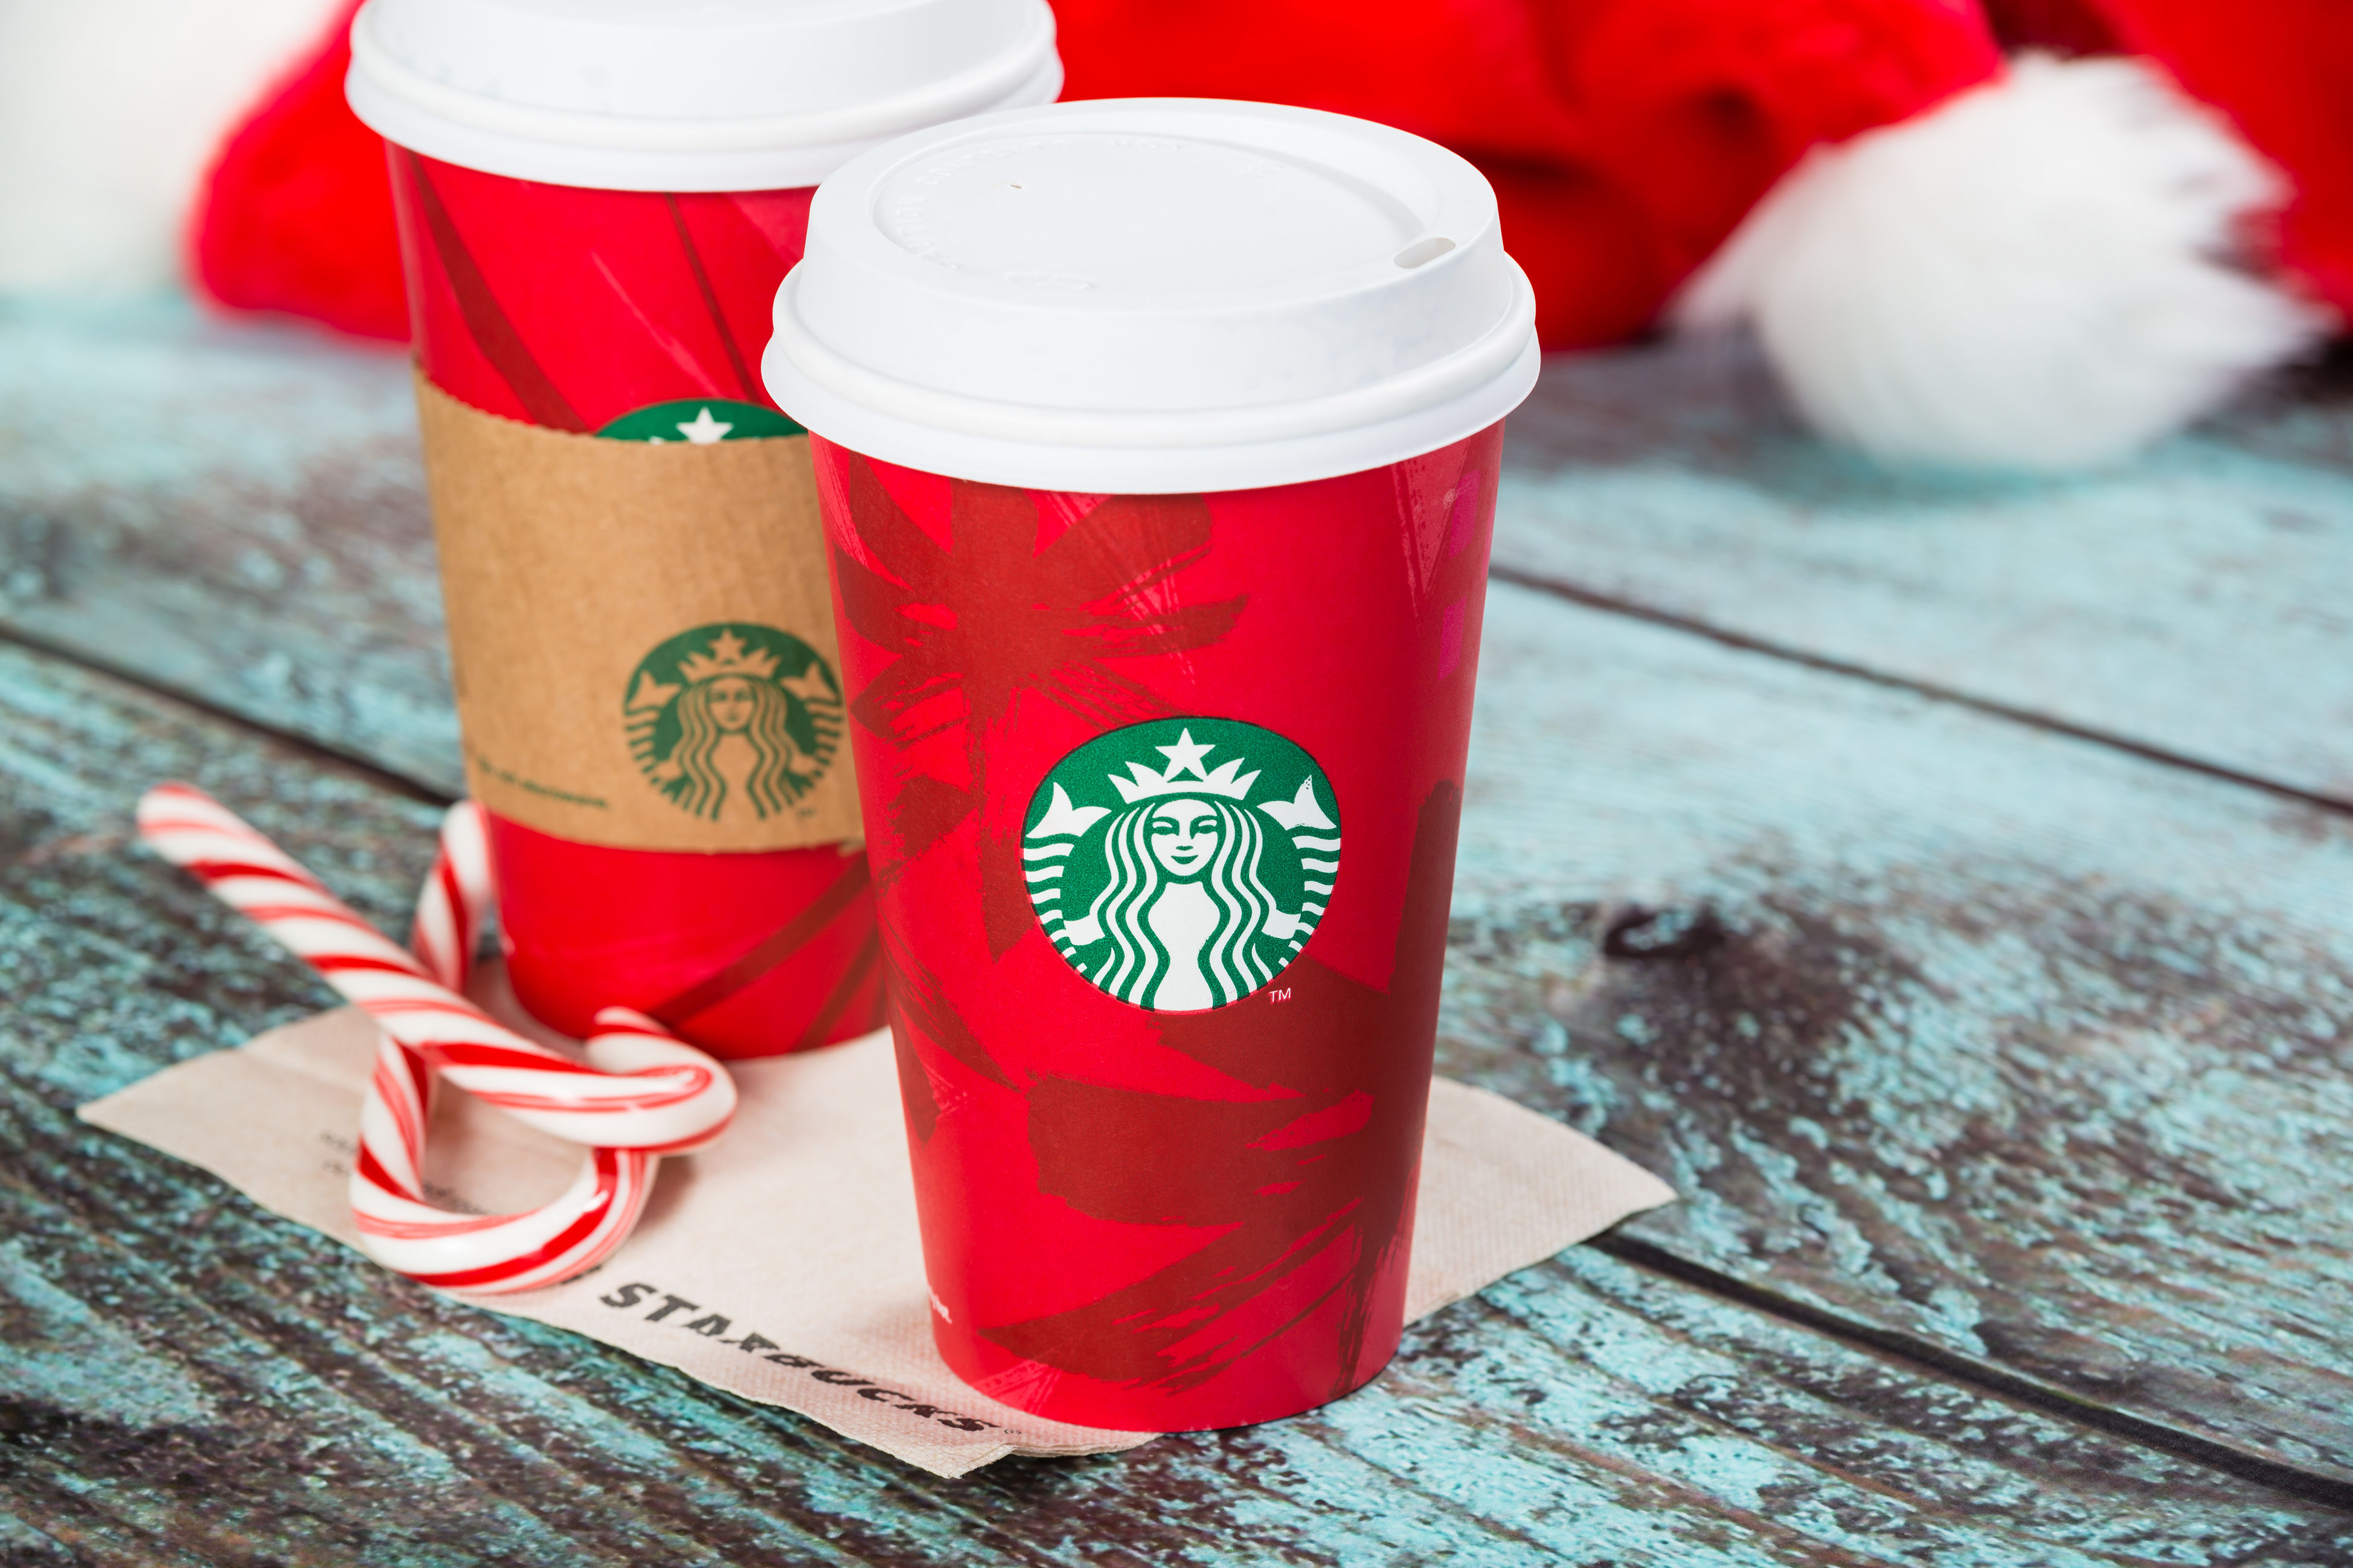 Have You Taken Advantage of the Starbucks Free Refill Policy?